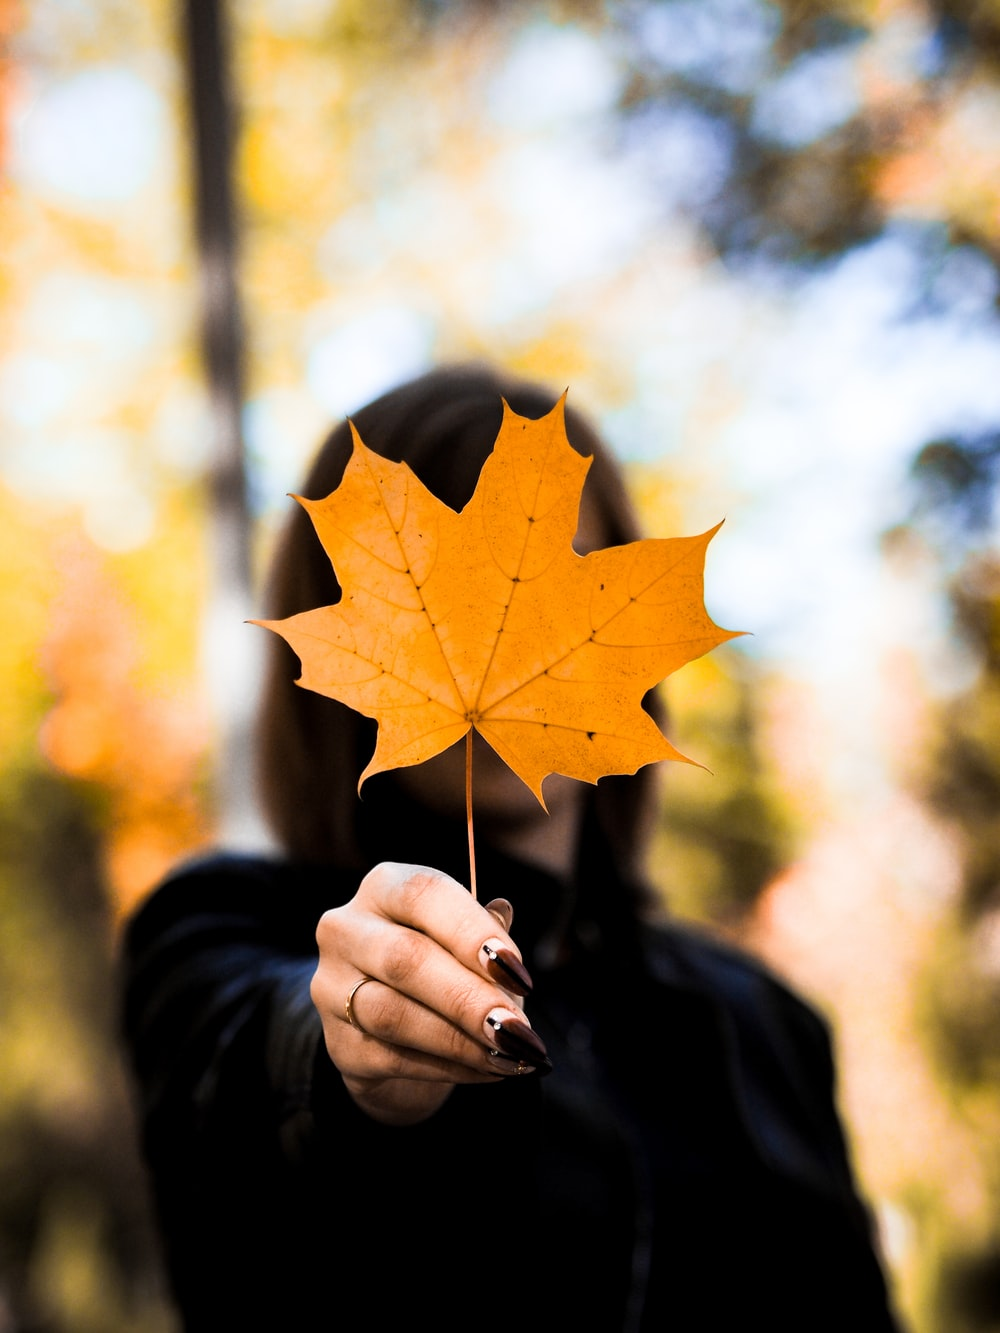 shallow focus photo of person holding orange maple leaf